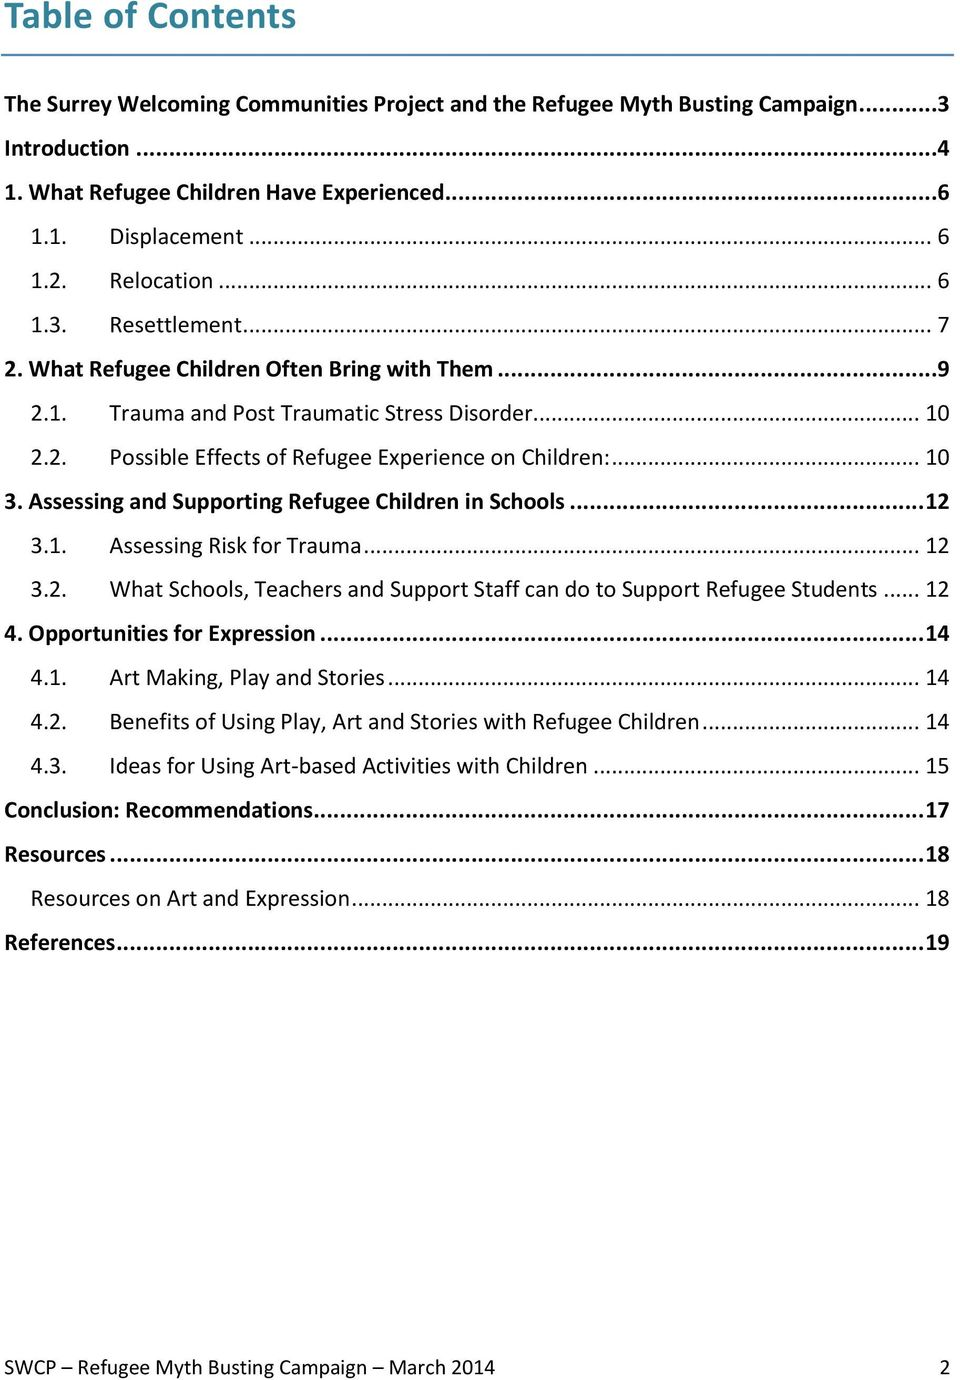 .. 10 3. Assessing and Supporting Refugee Children in Schools... 12 3.1. Assessing Risk for Trauma... 12 3.2. What Schools, Teachers and Support Staff can do to Support Refugee Students... 12 4.